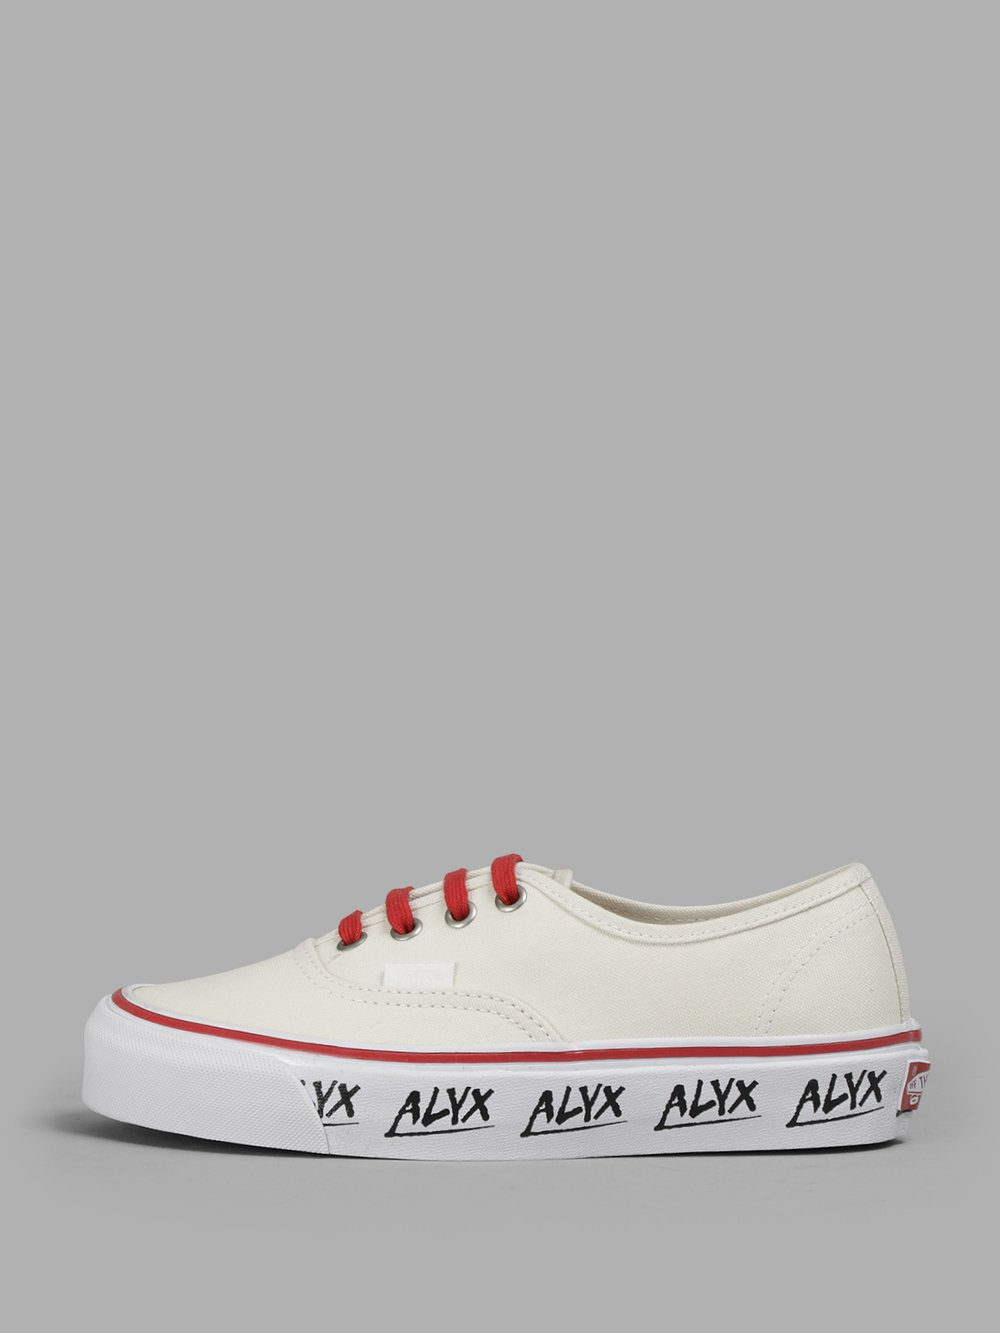 Off-White Vans Edition OG Authentic LX Sneakers